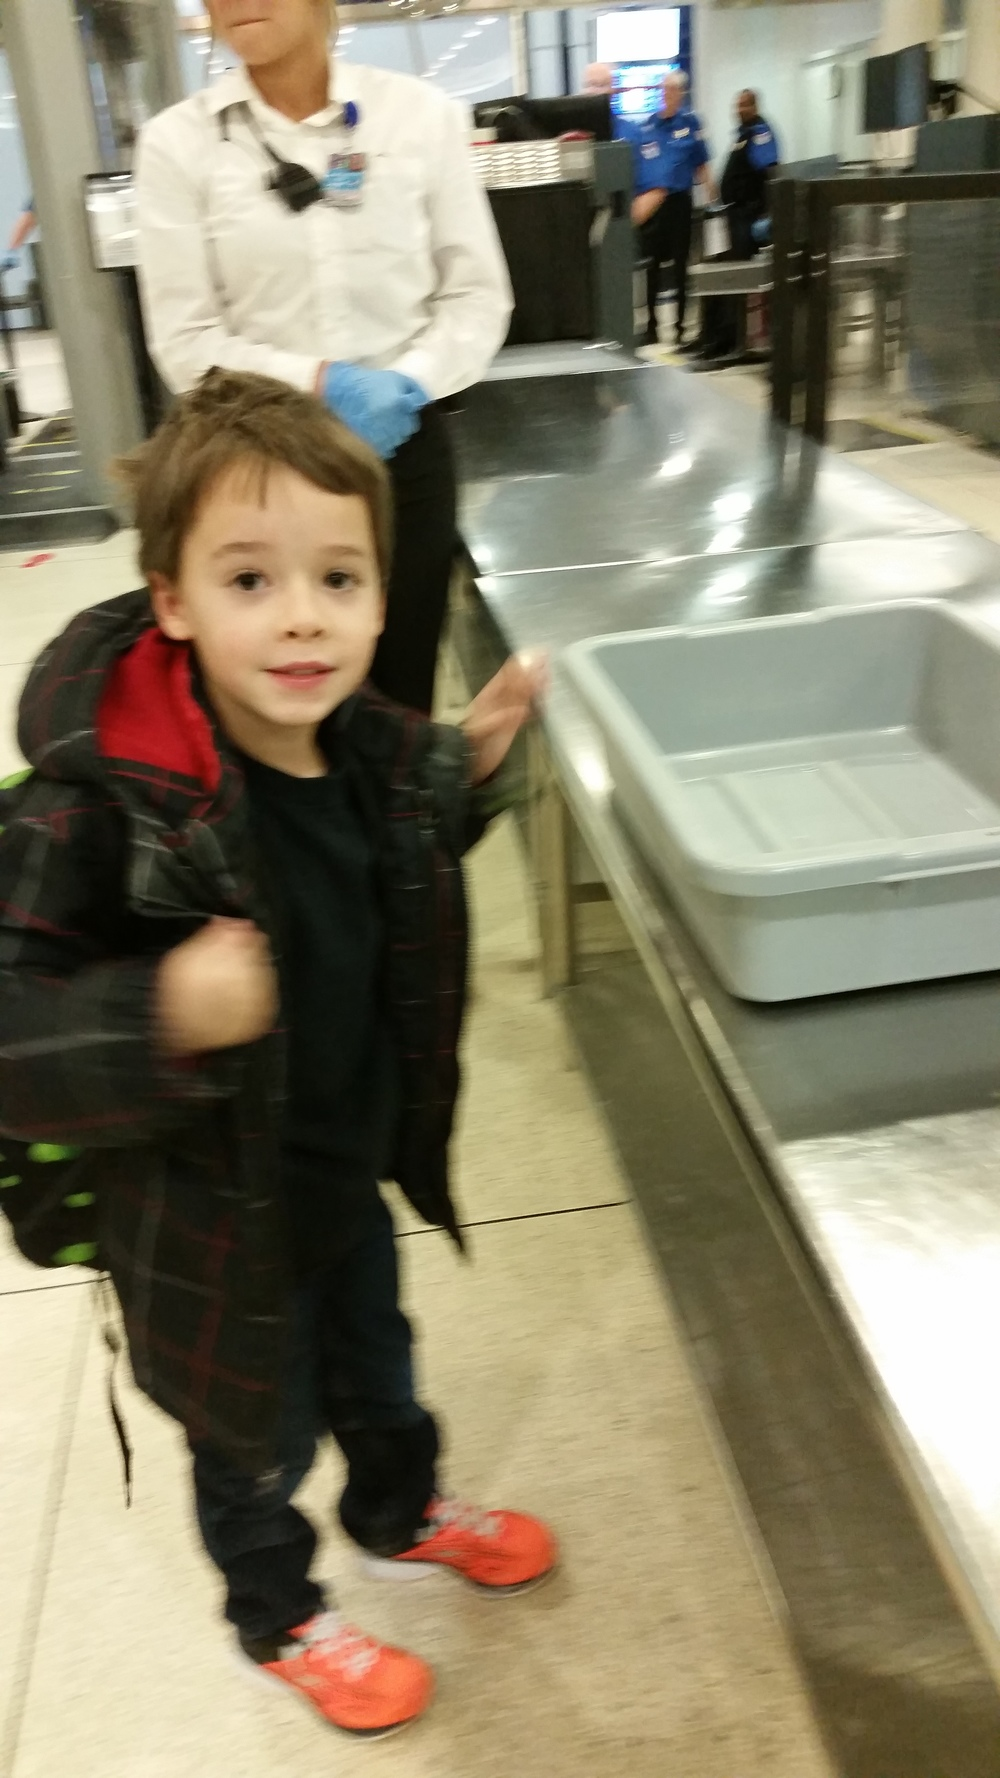 Emerson puts his jacket and backpack in the bin.